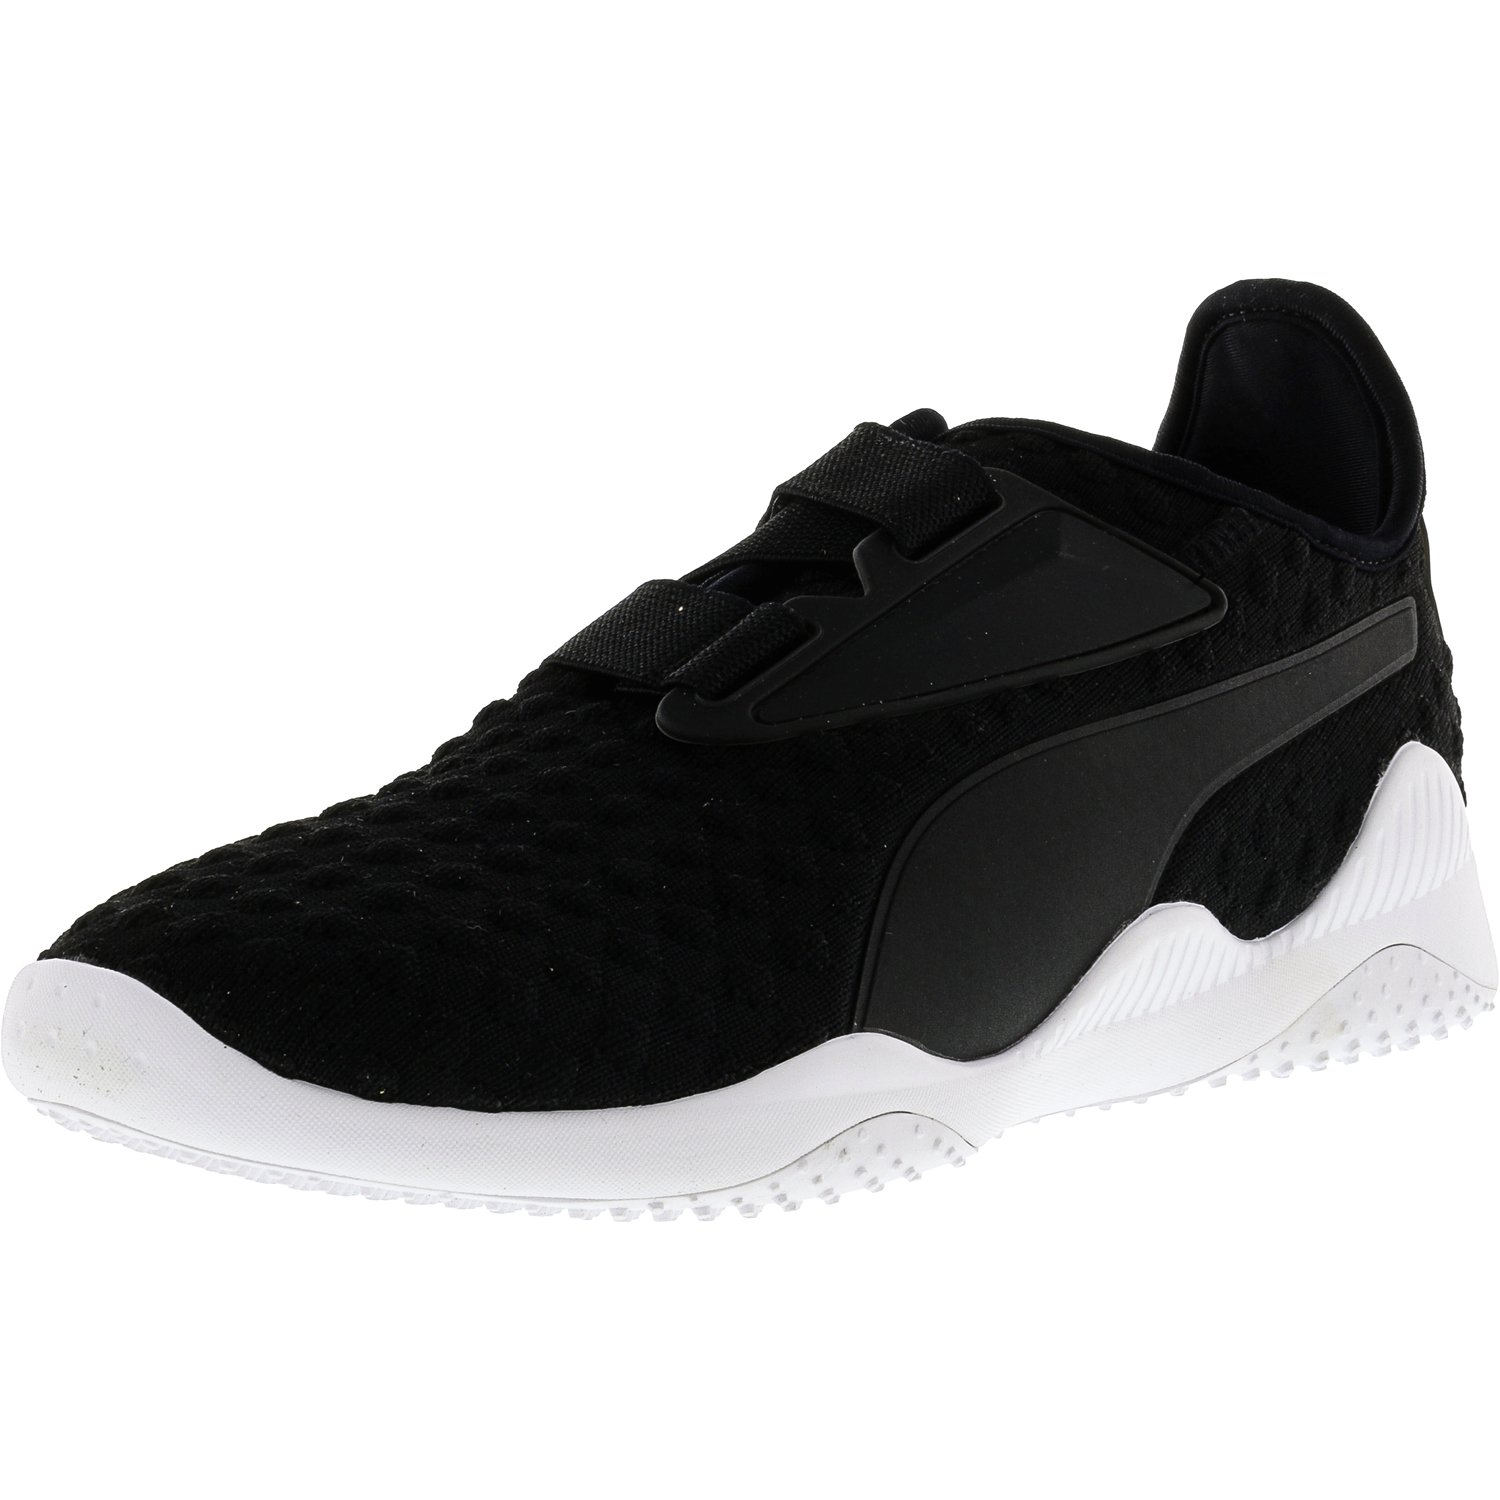 Puma Men's Mostro Bubble Knit Black   White Ankle-High Running Shoe 10M by Puma